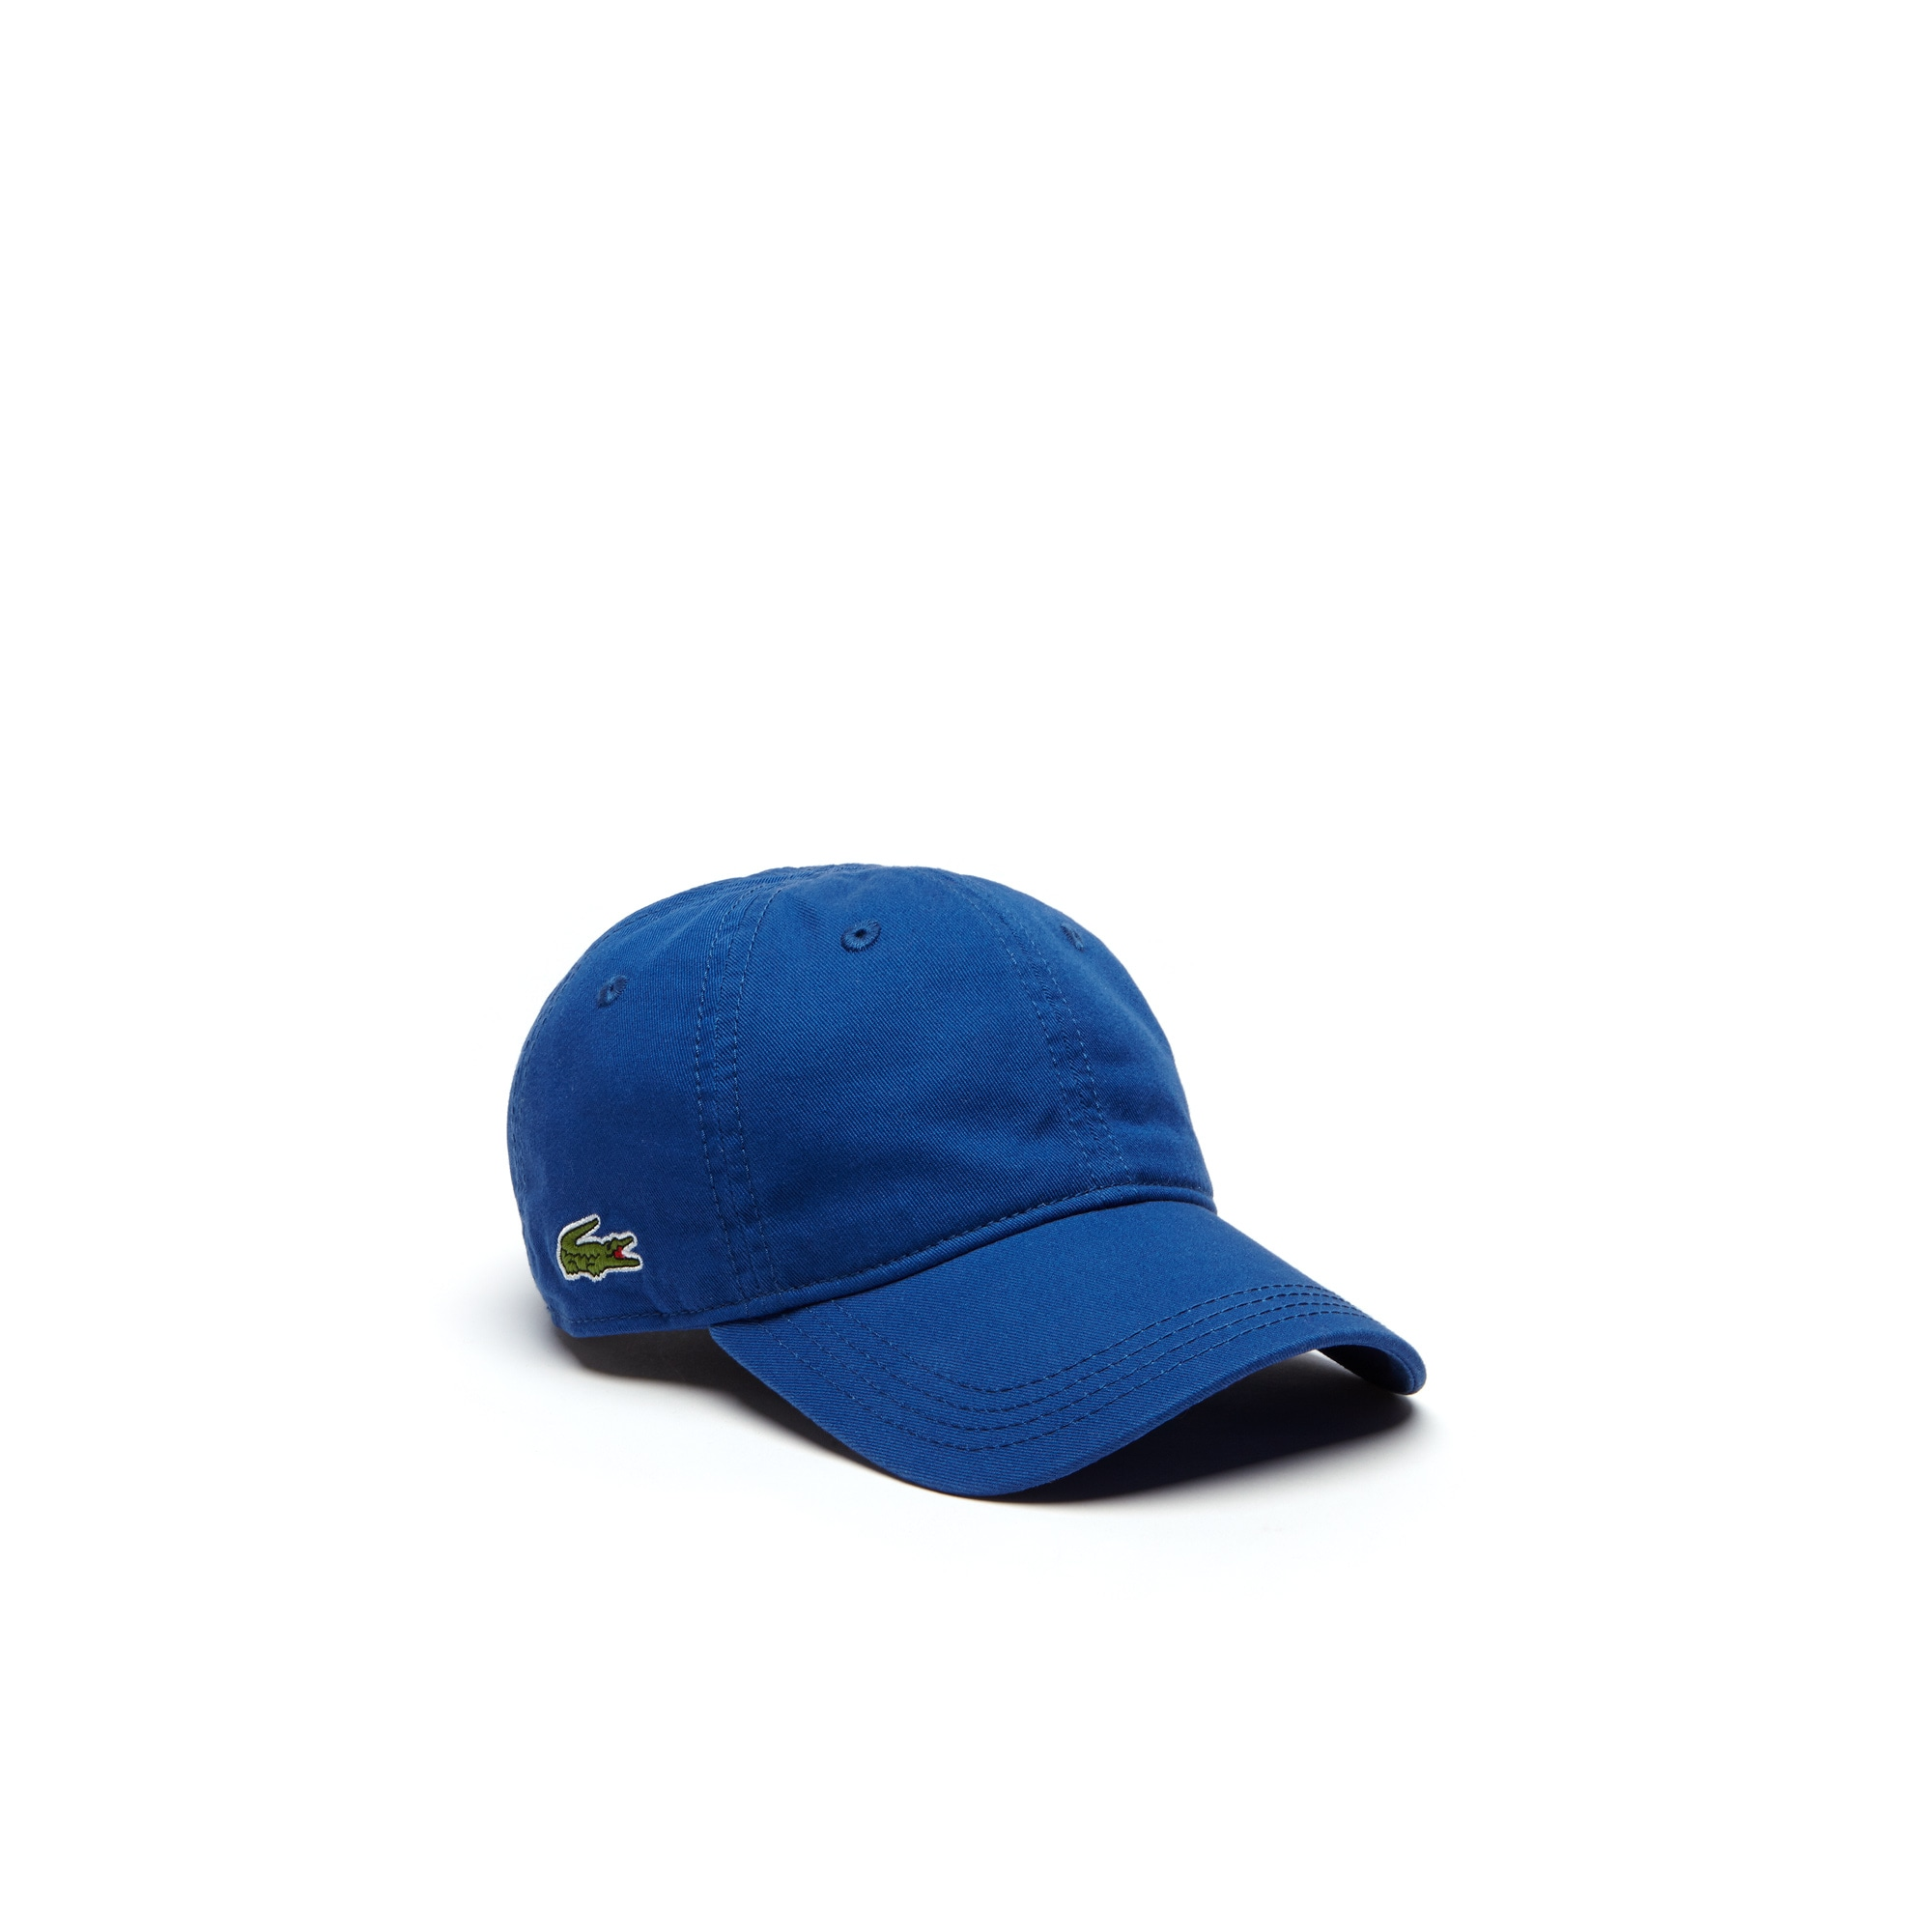 4fb2ea60 Caps & Hats | Men's Accessories | LACOSTE